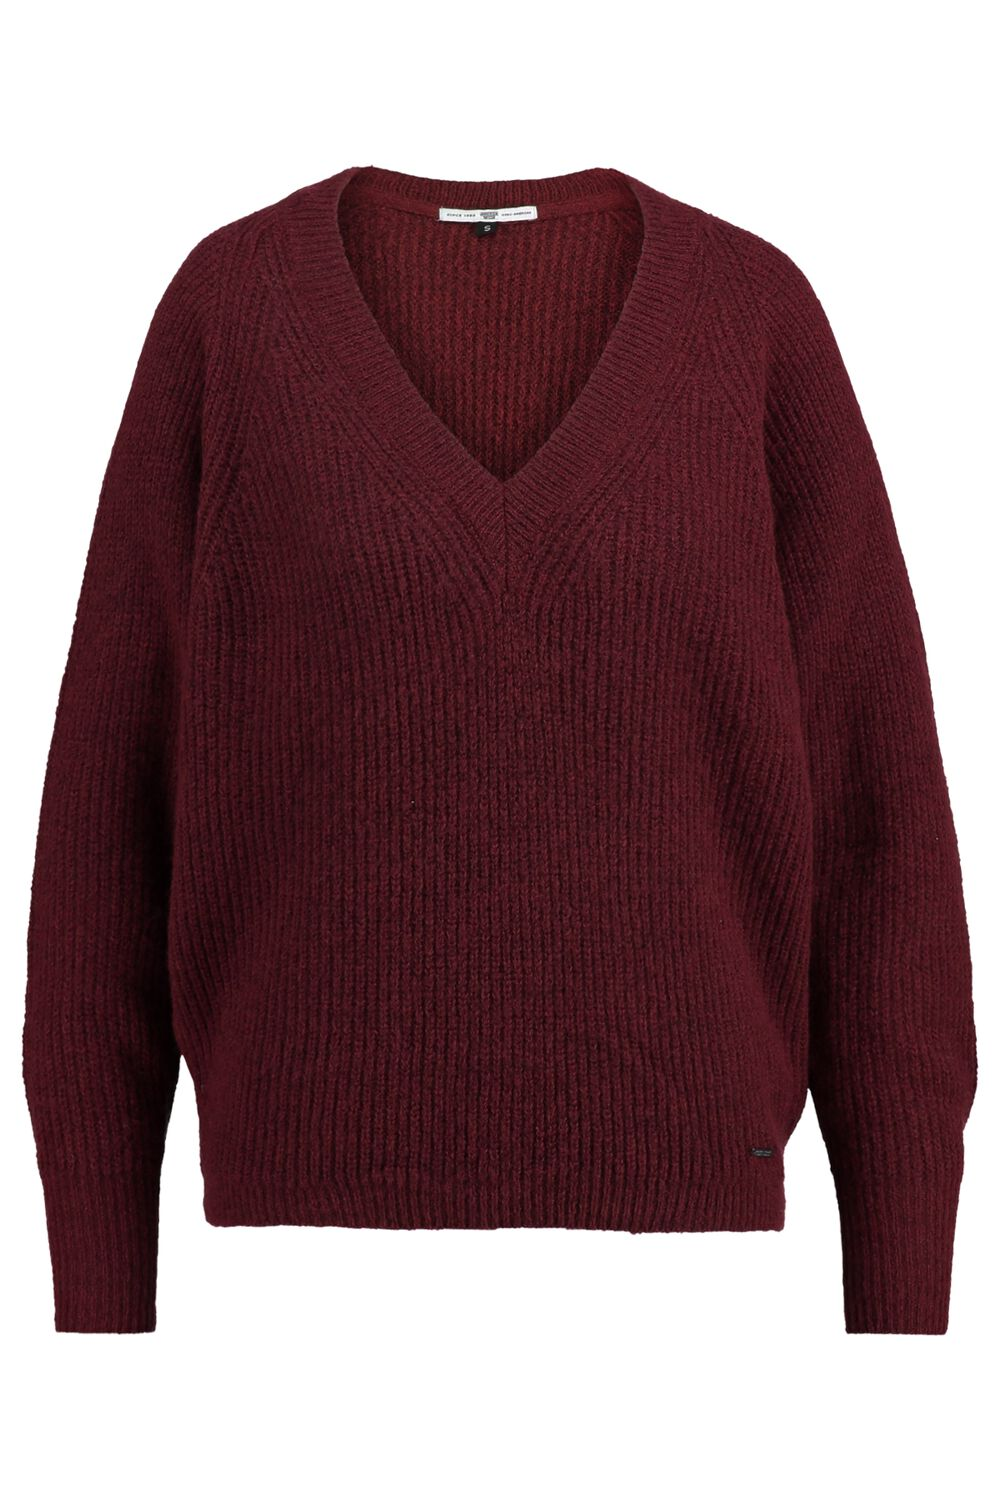 America Today Dames Trui Klementine Rood